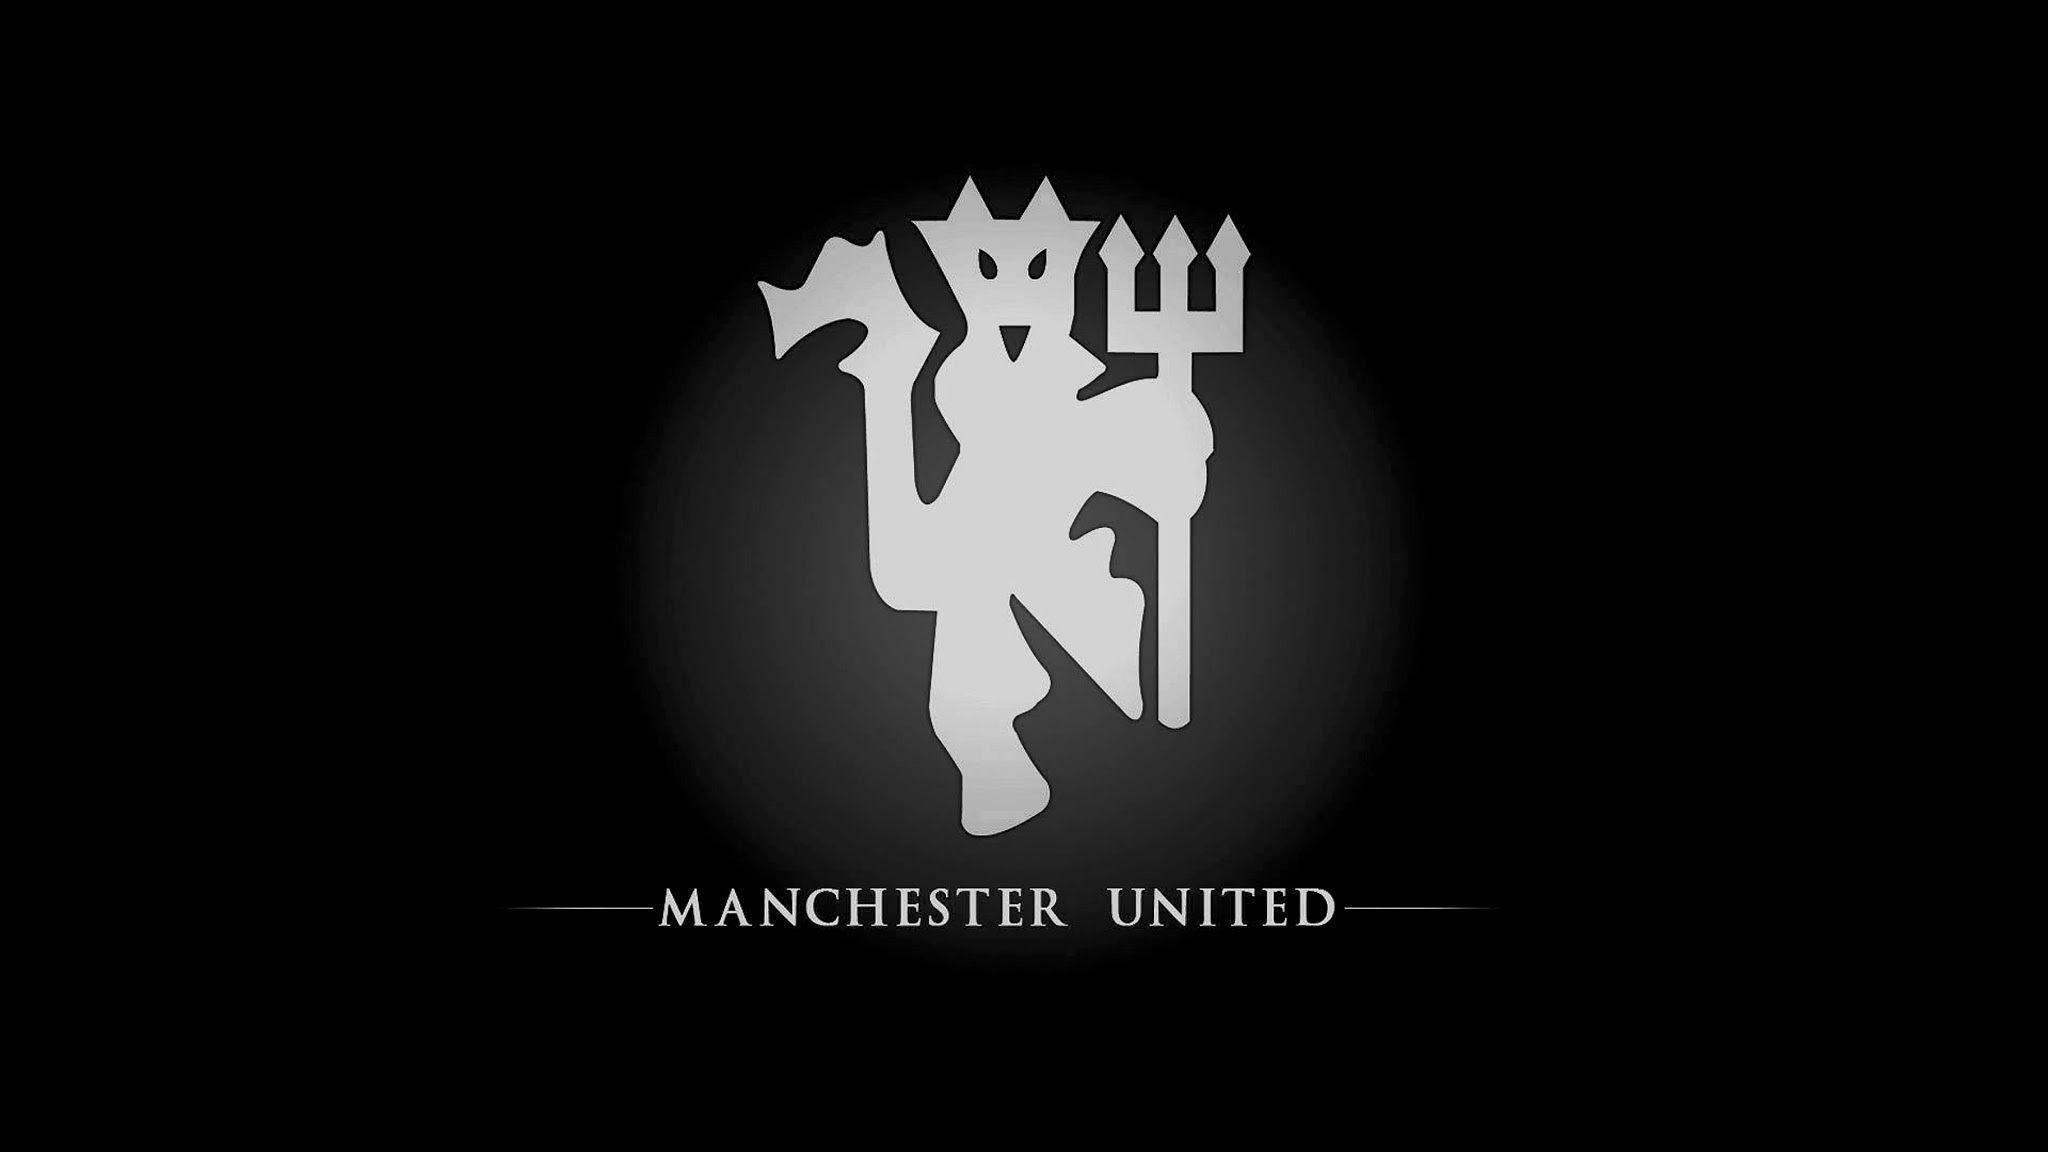 Sports Wallpaper: Manchester United Black Wallpapers Free HD ...